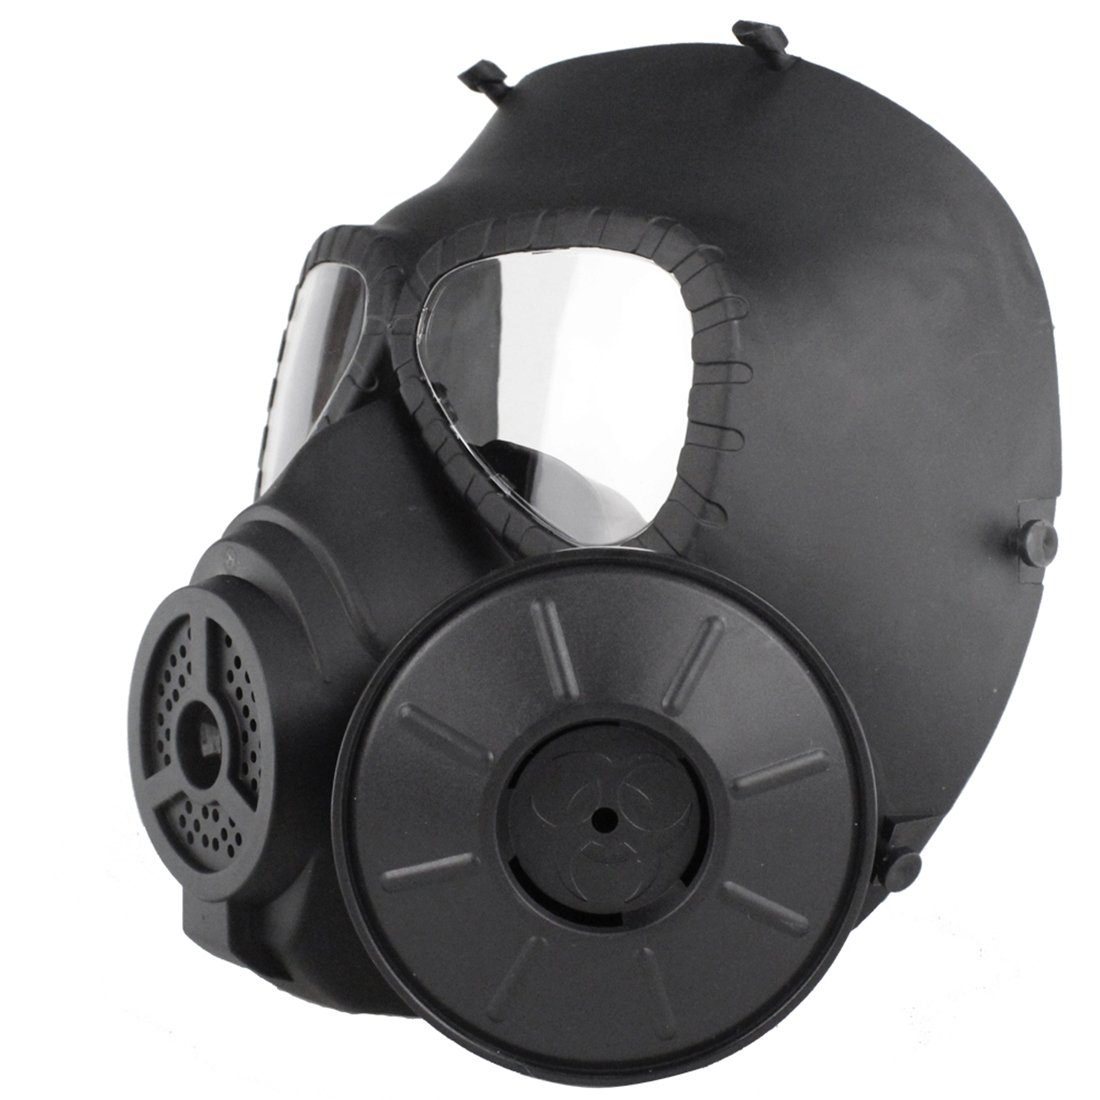 Amazon.com: PeleusTech® WST Head Mask Full Face Single Canister Electric Ventilative Biochemical Gas Mask[No Actual Anti-Virus Function] Toys Masks Children ...